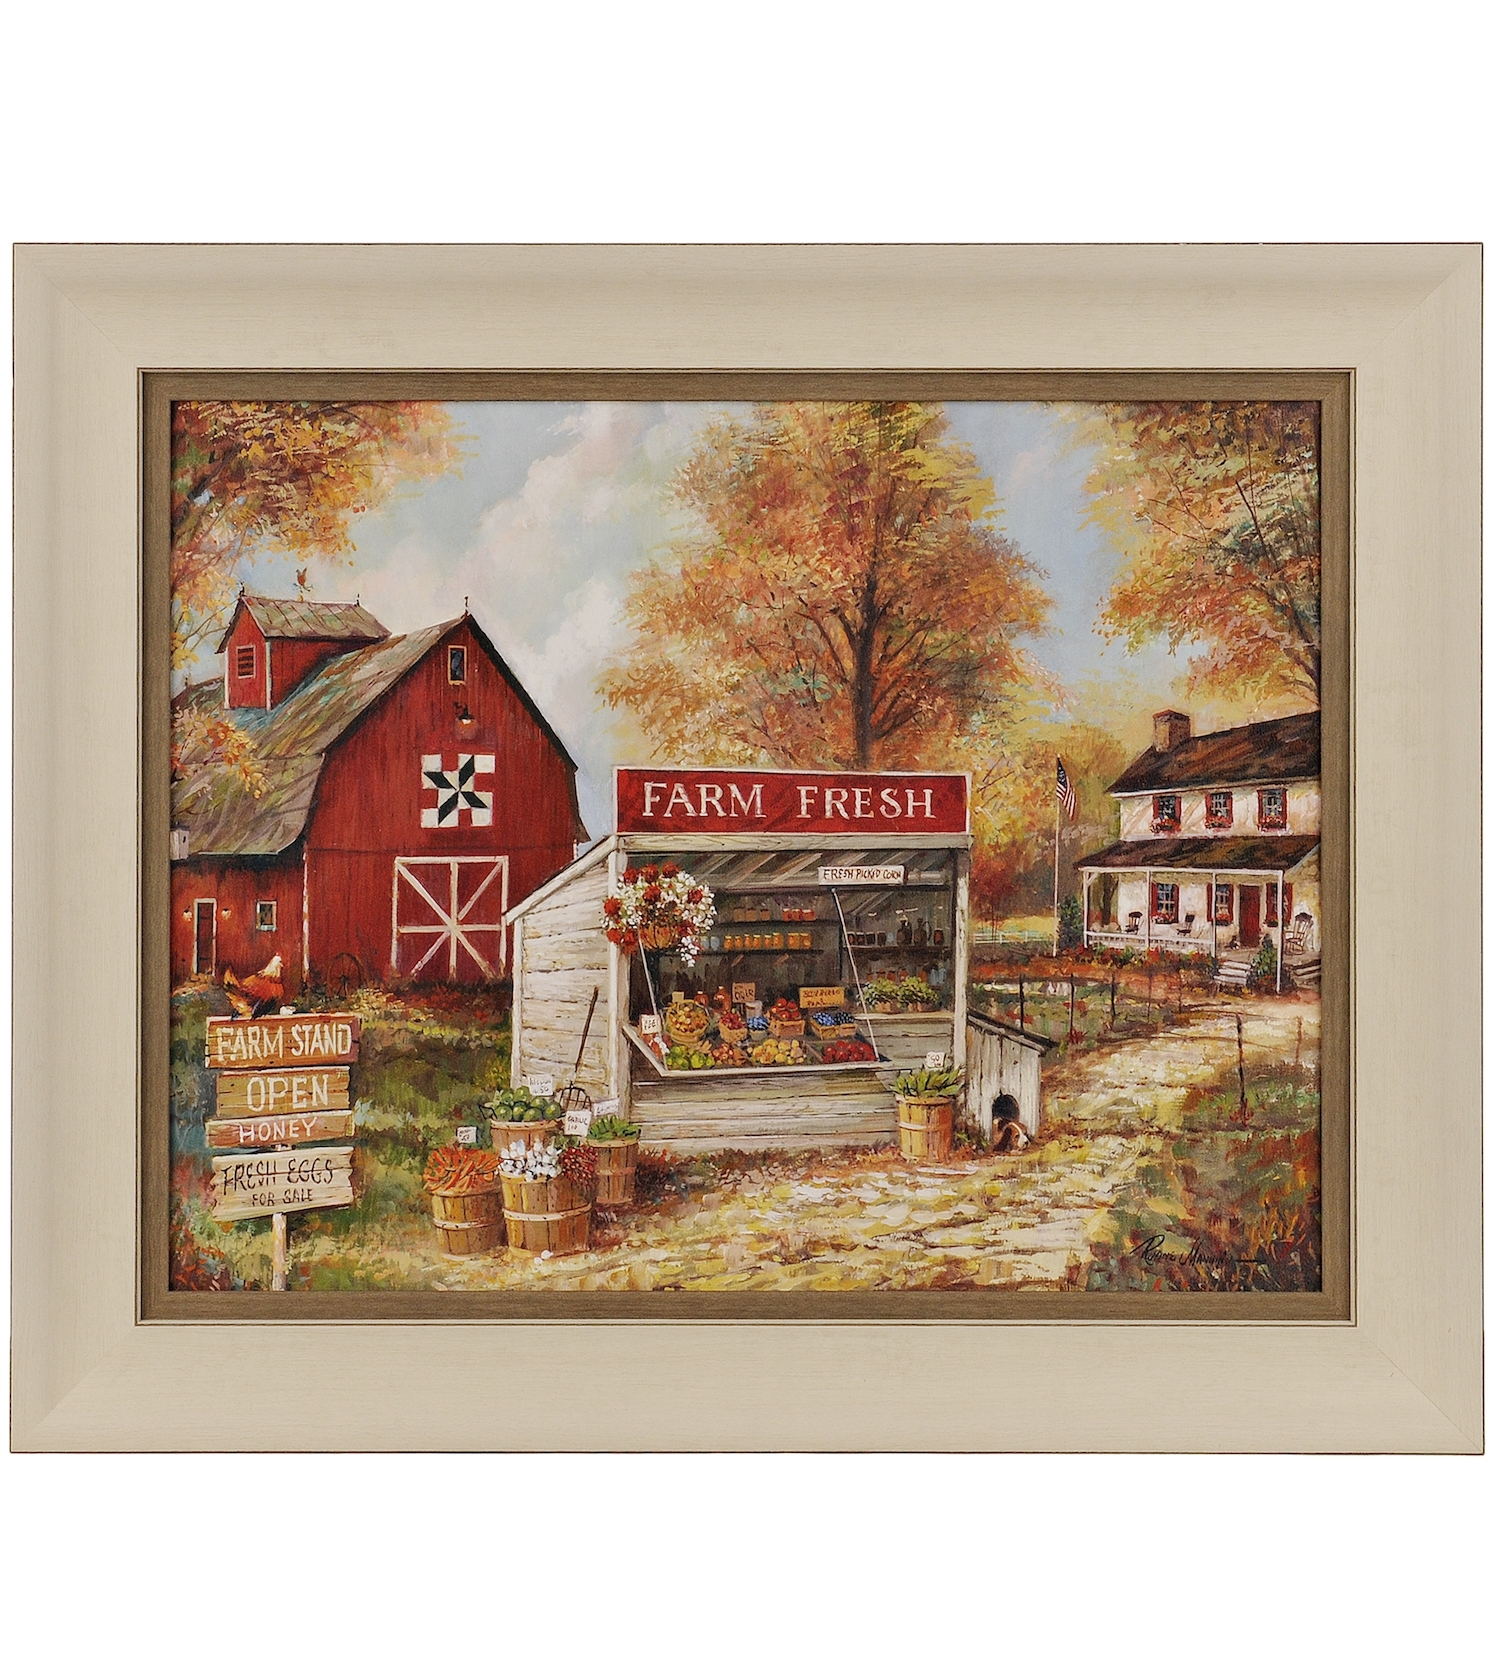 Farm Stand Framed Art Print | Farm Stand, Farming And Barn Pertaining To 2018 Affordable Framed Art Prints (Gallery 5 of 15)